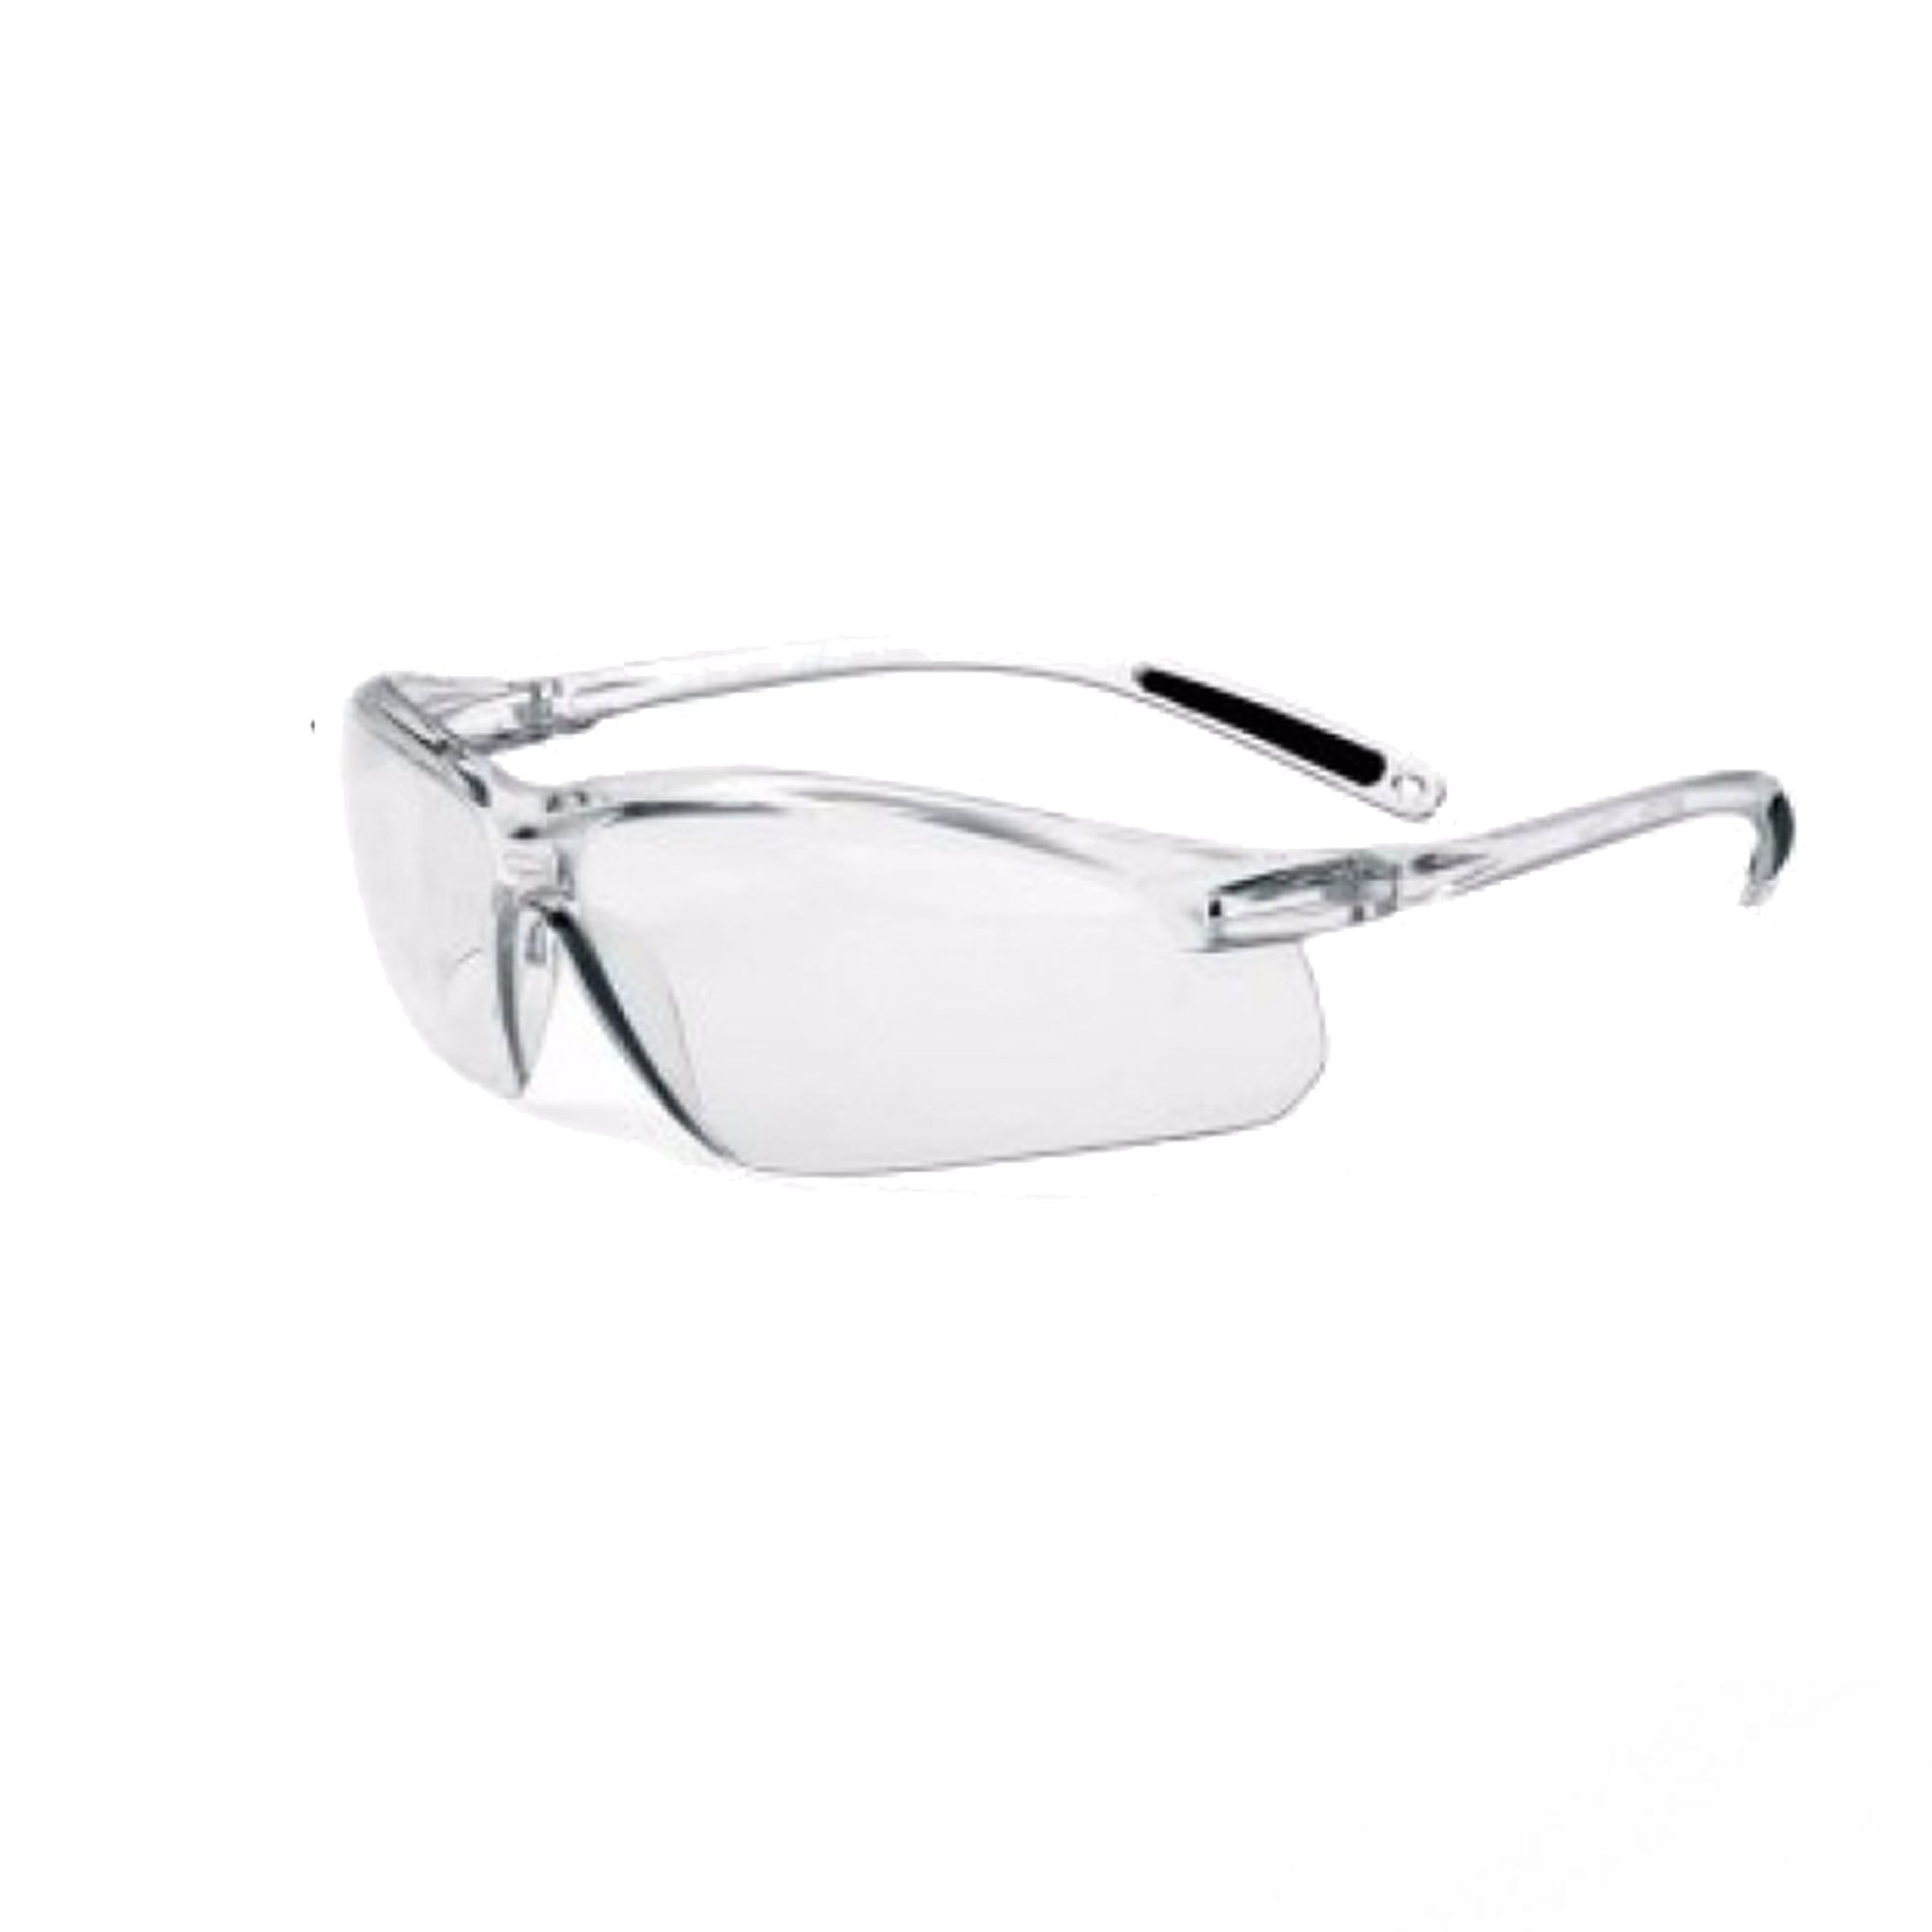 OCULOS DE PROTECAO SS5 SUPER SAFETY- CA 26126